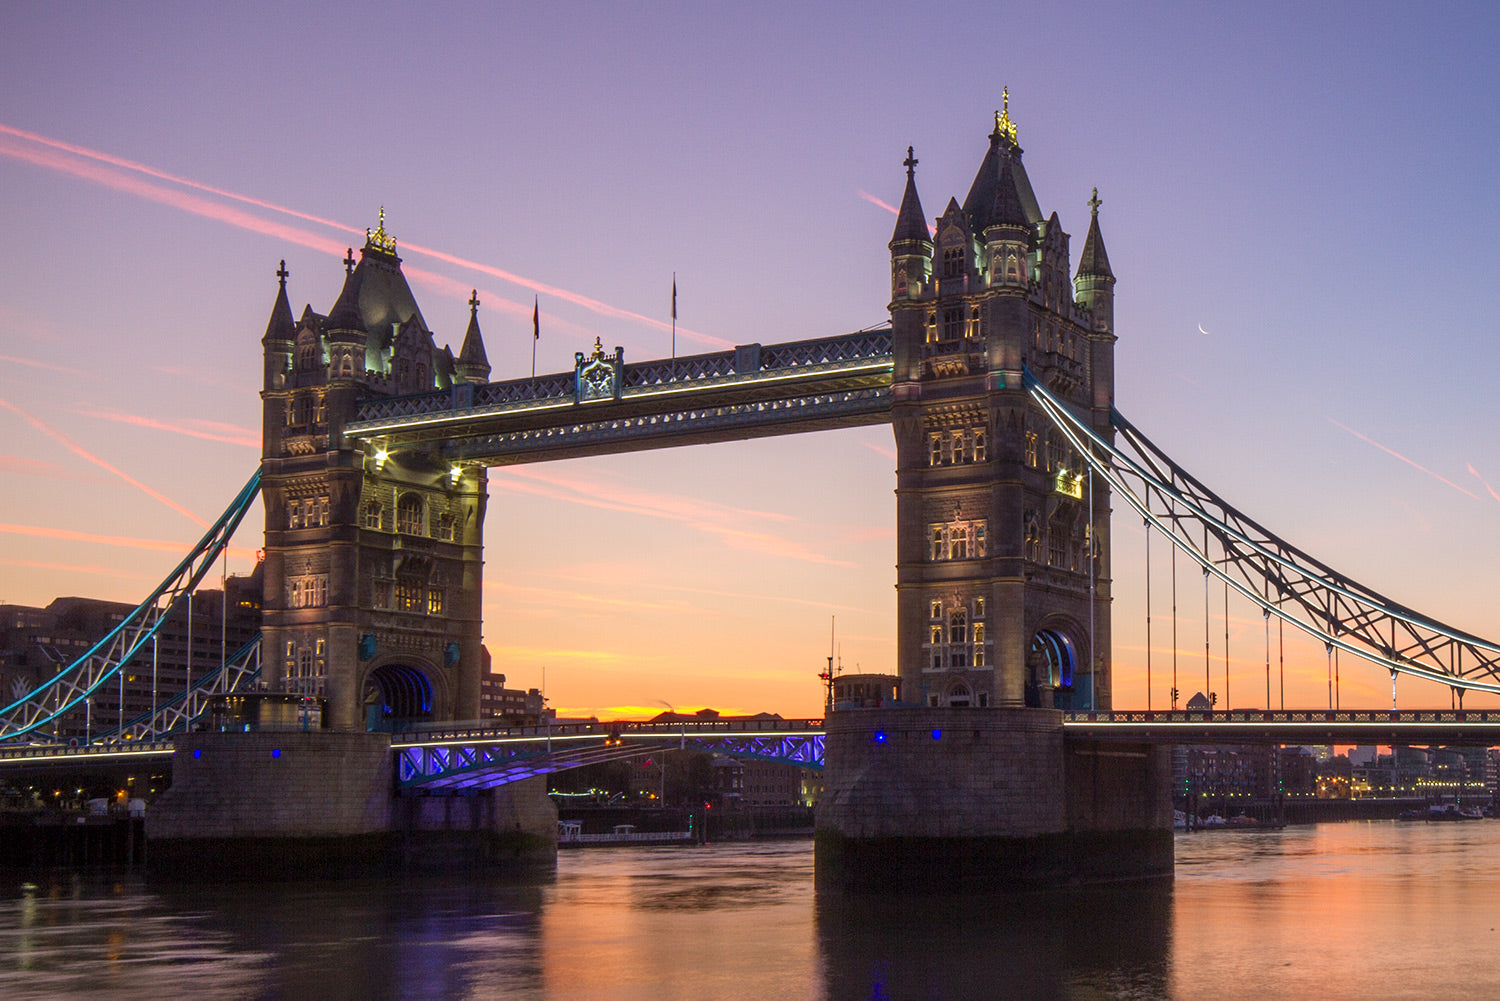 The dawn breaks over Tower Bridge and the River Thames as the sky changes colour to light purples and yellow.